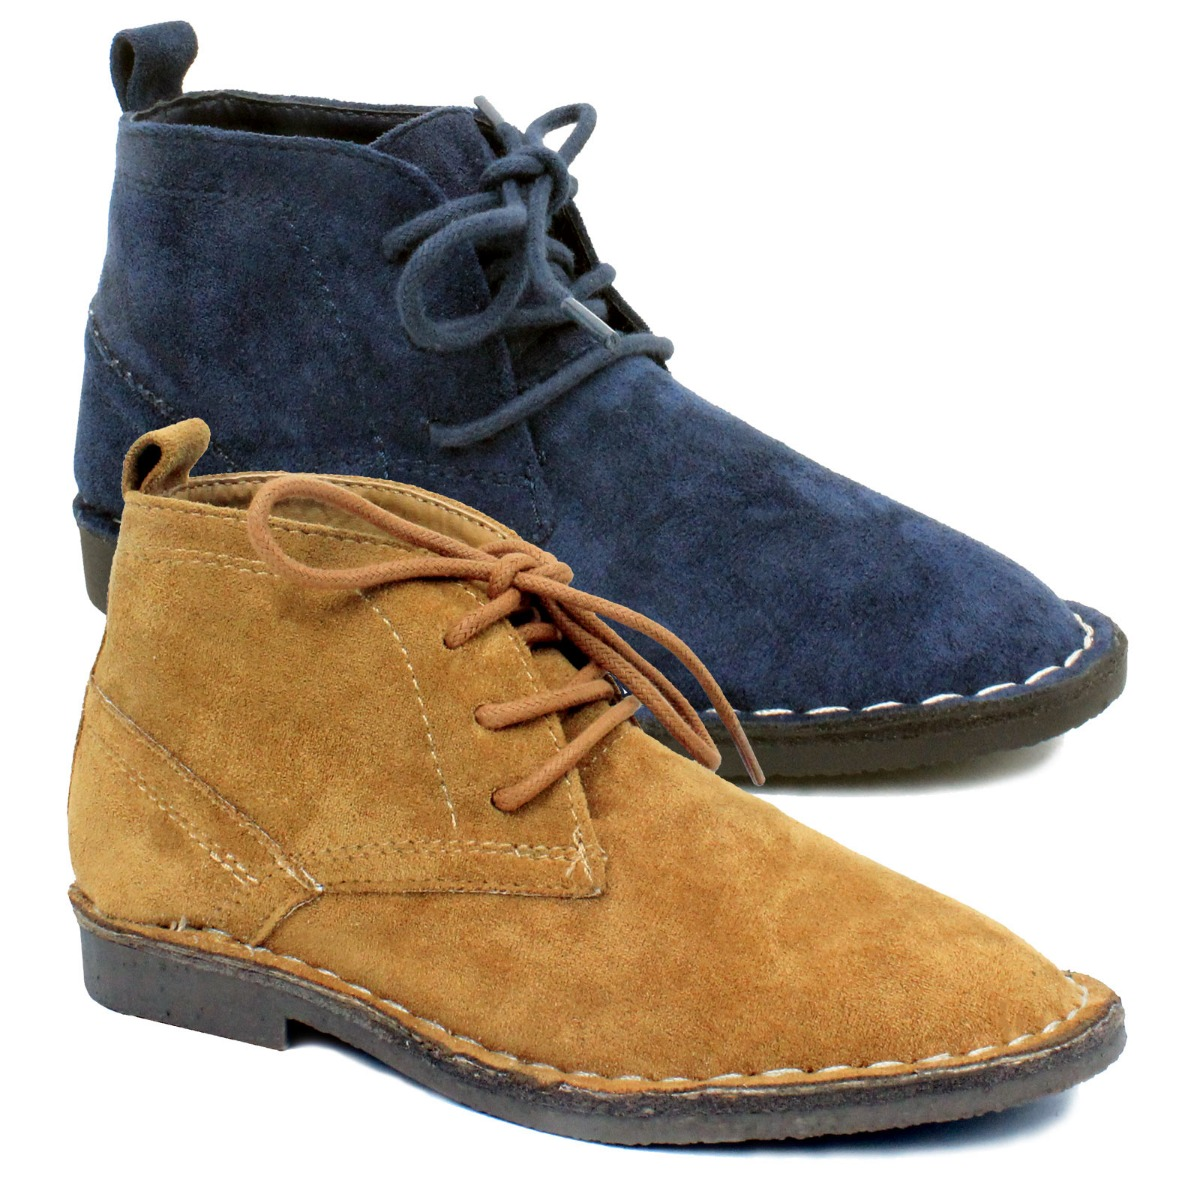 fe1f5bb5e004 ... Kids Boys Suede Leather Desert Dealer Ankle Boots Smart Shoes Lace Up  Sizes 6-6